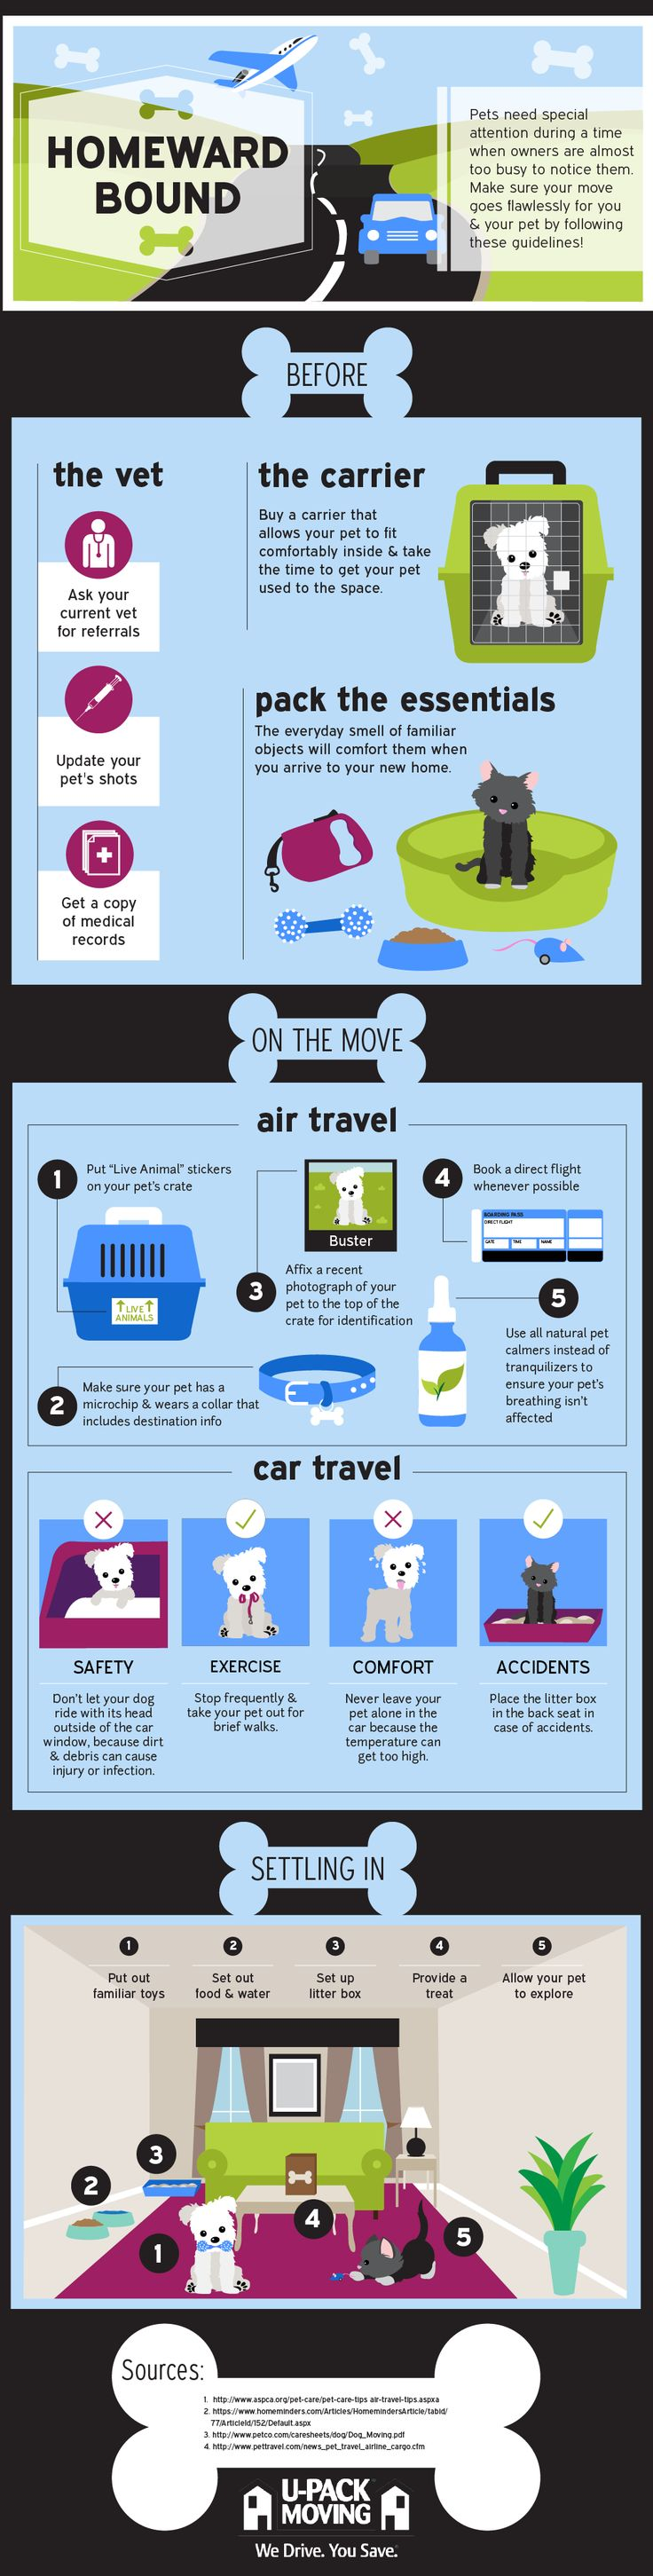 Moving with pets--excellent info on how to move your fur babies to your new home, safe and sound! #moving #pets